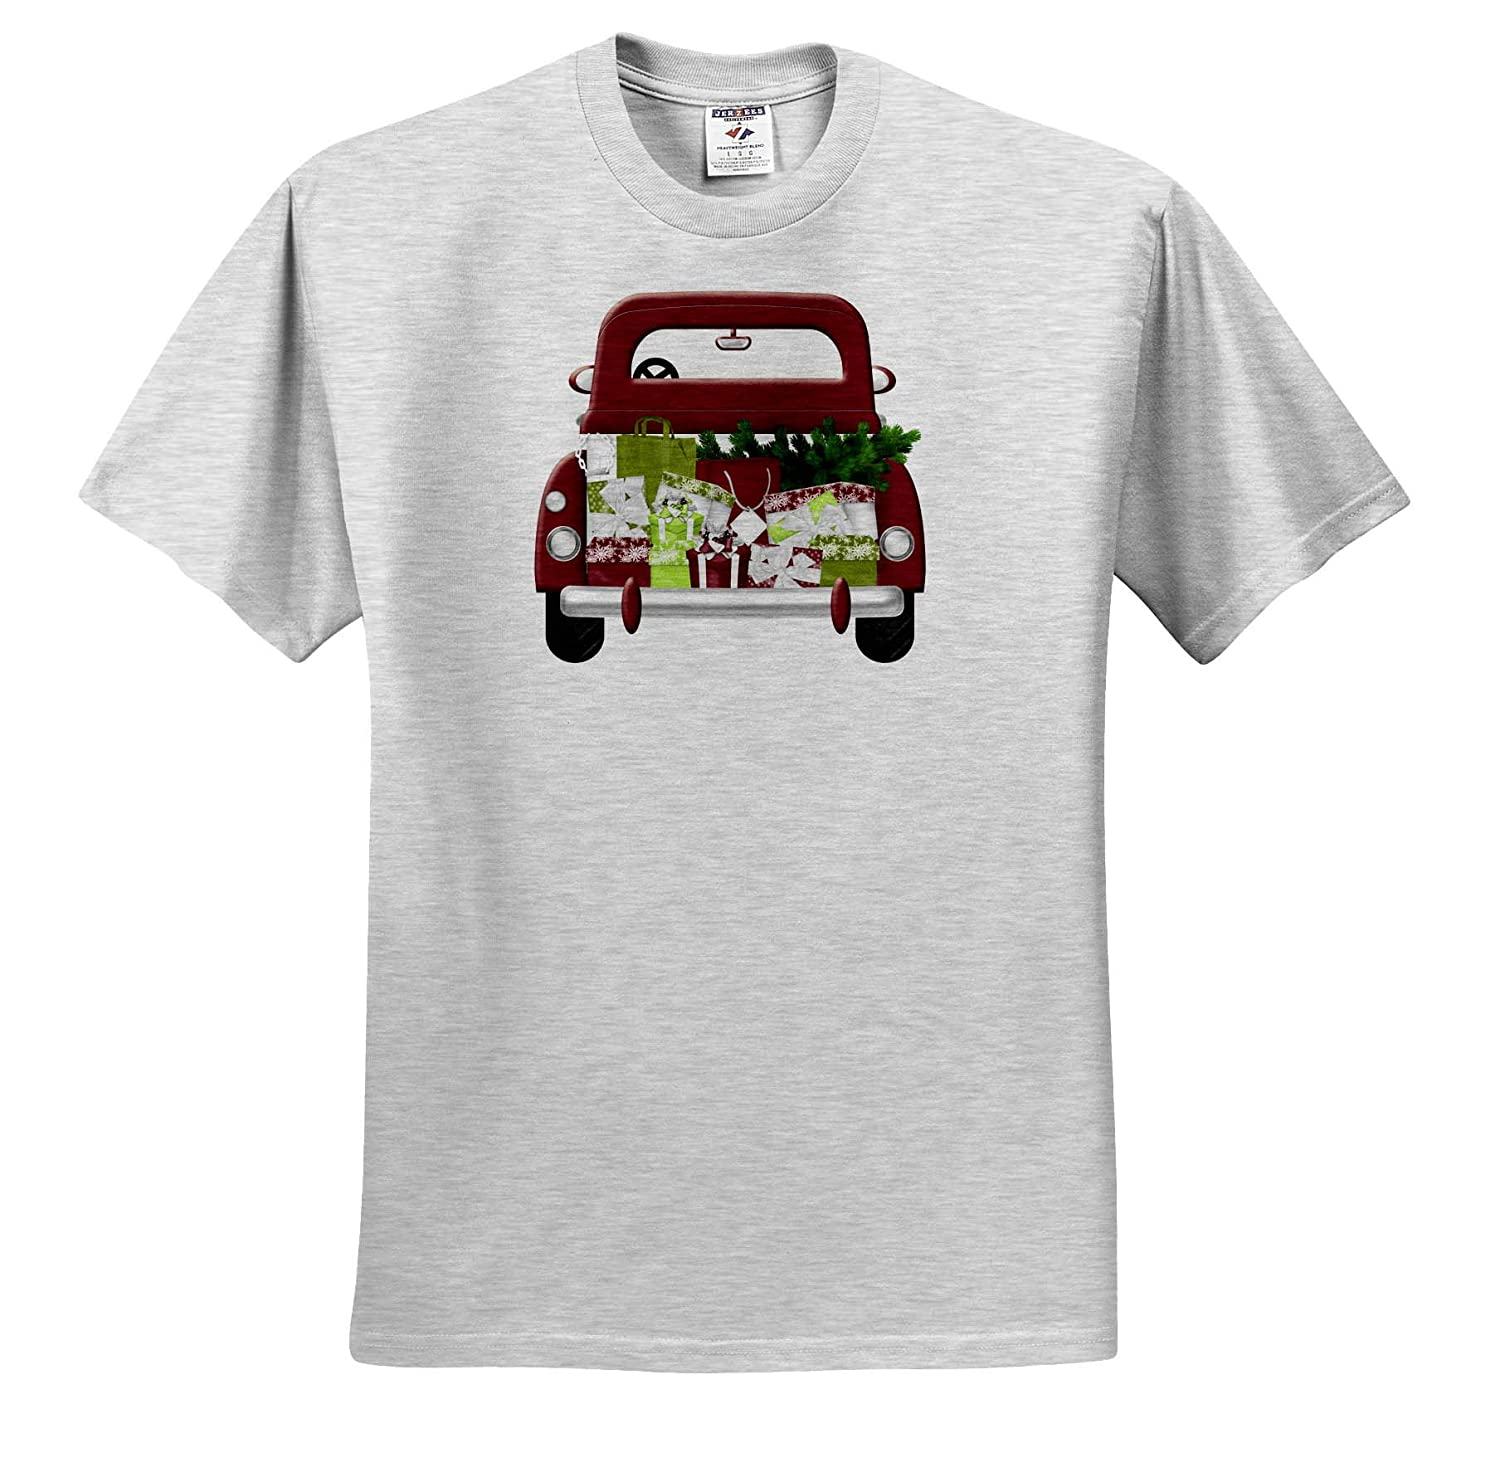 3dRose Anne Marie Baugh Christmas Cute Vintage Christmas Truck Full of Gifts Illustration Adult T-Shirt XL ts/_318482